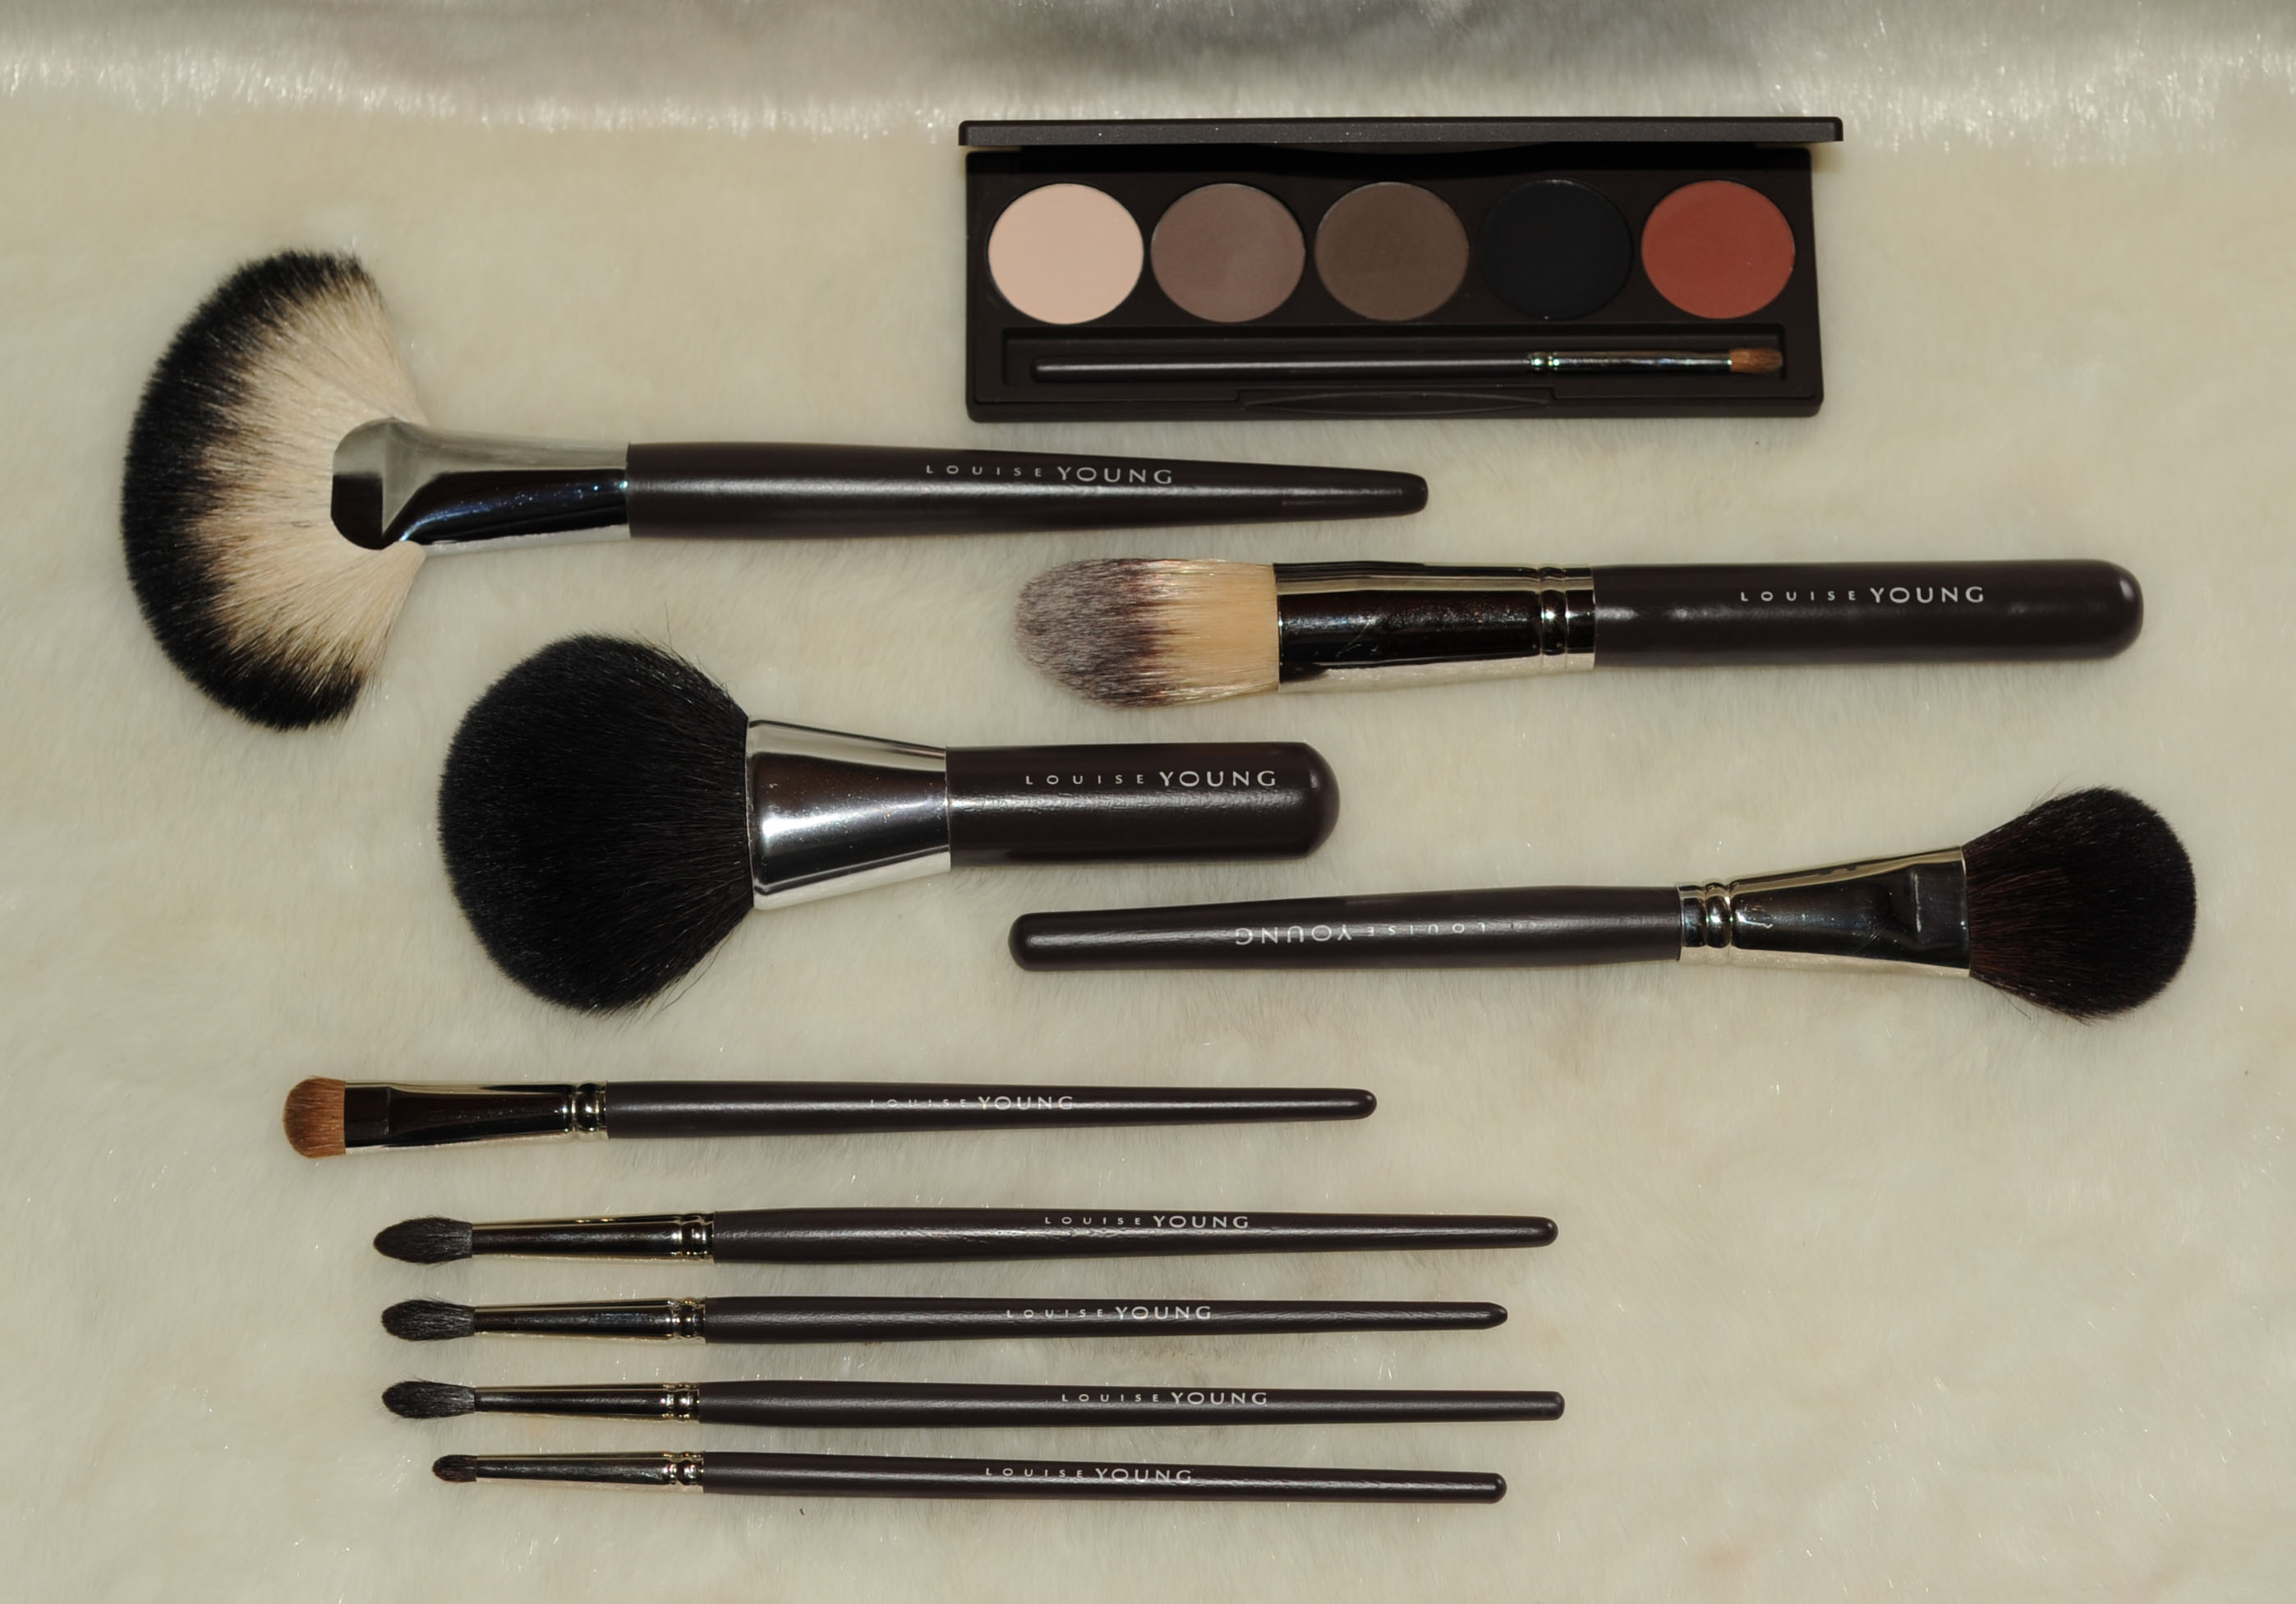 Louise Young brushes and palette - Sweet Makeup Temptations